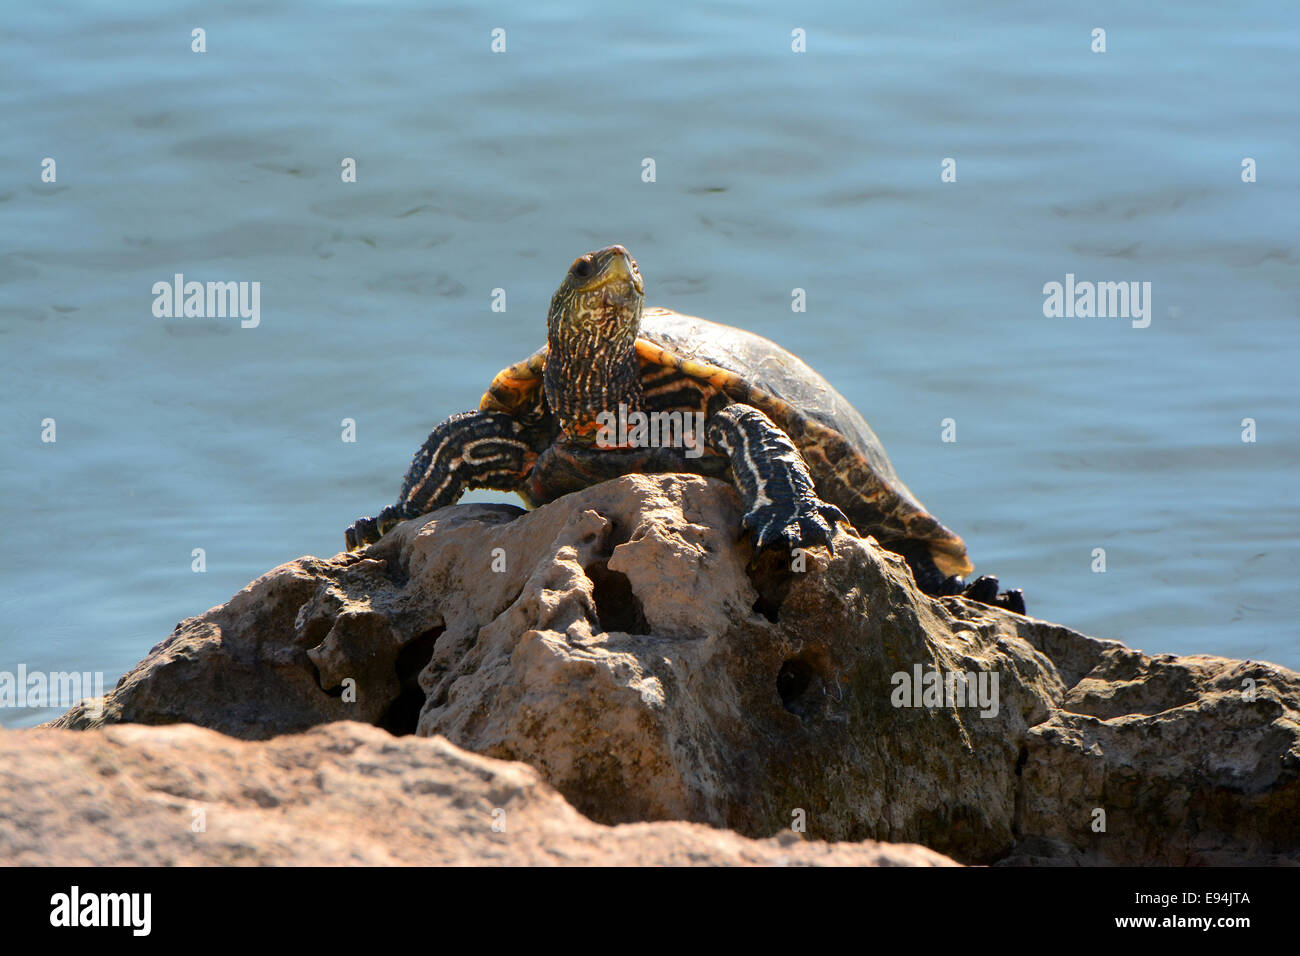 Swamp turtle basking in the sun - Stock Image